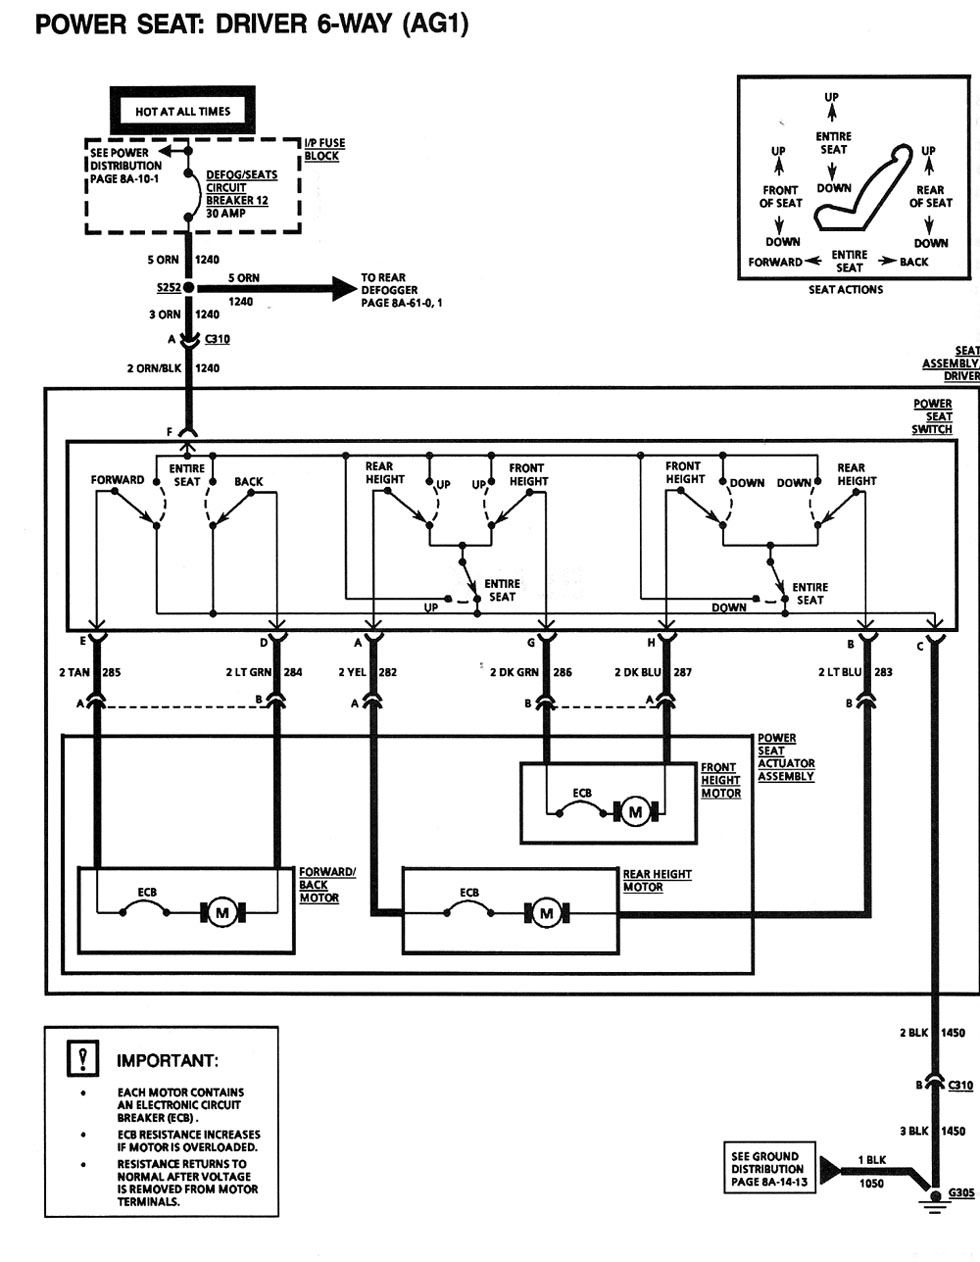 hight resolution of 2011 camaro ac wiring diagram wiring diagram article review 2011 camaro ac wiring diagram